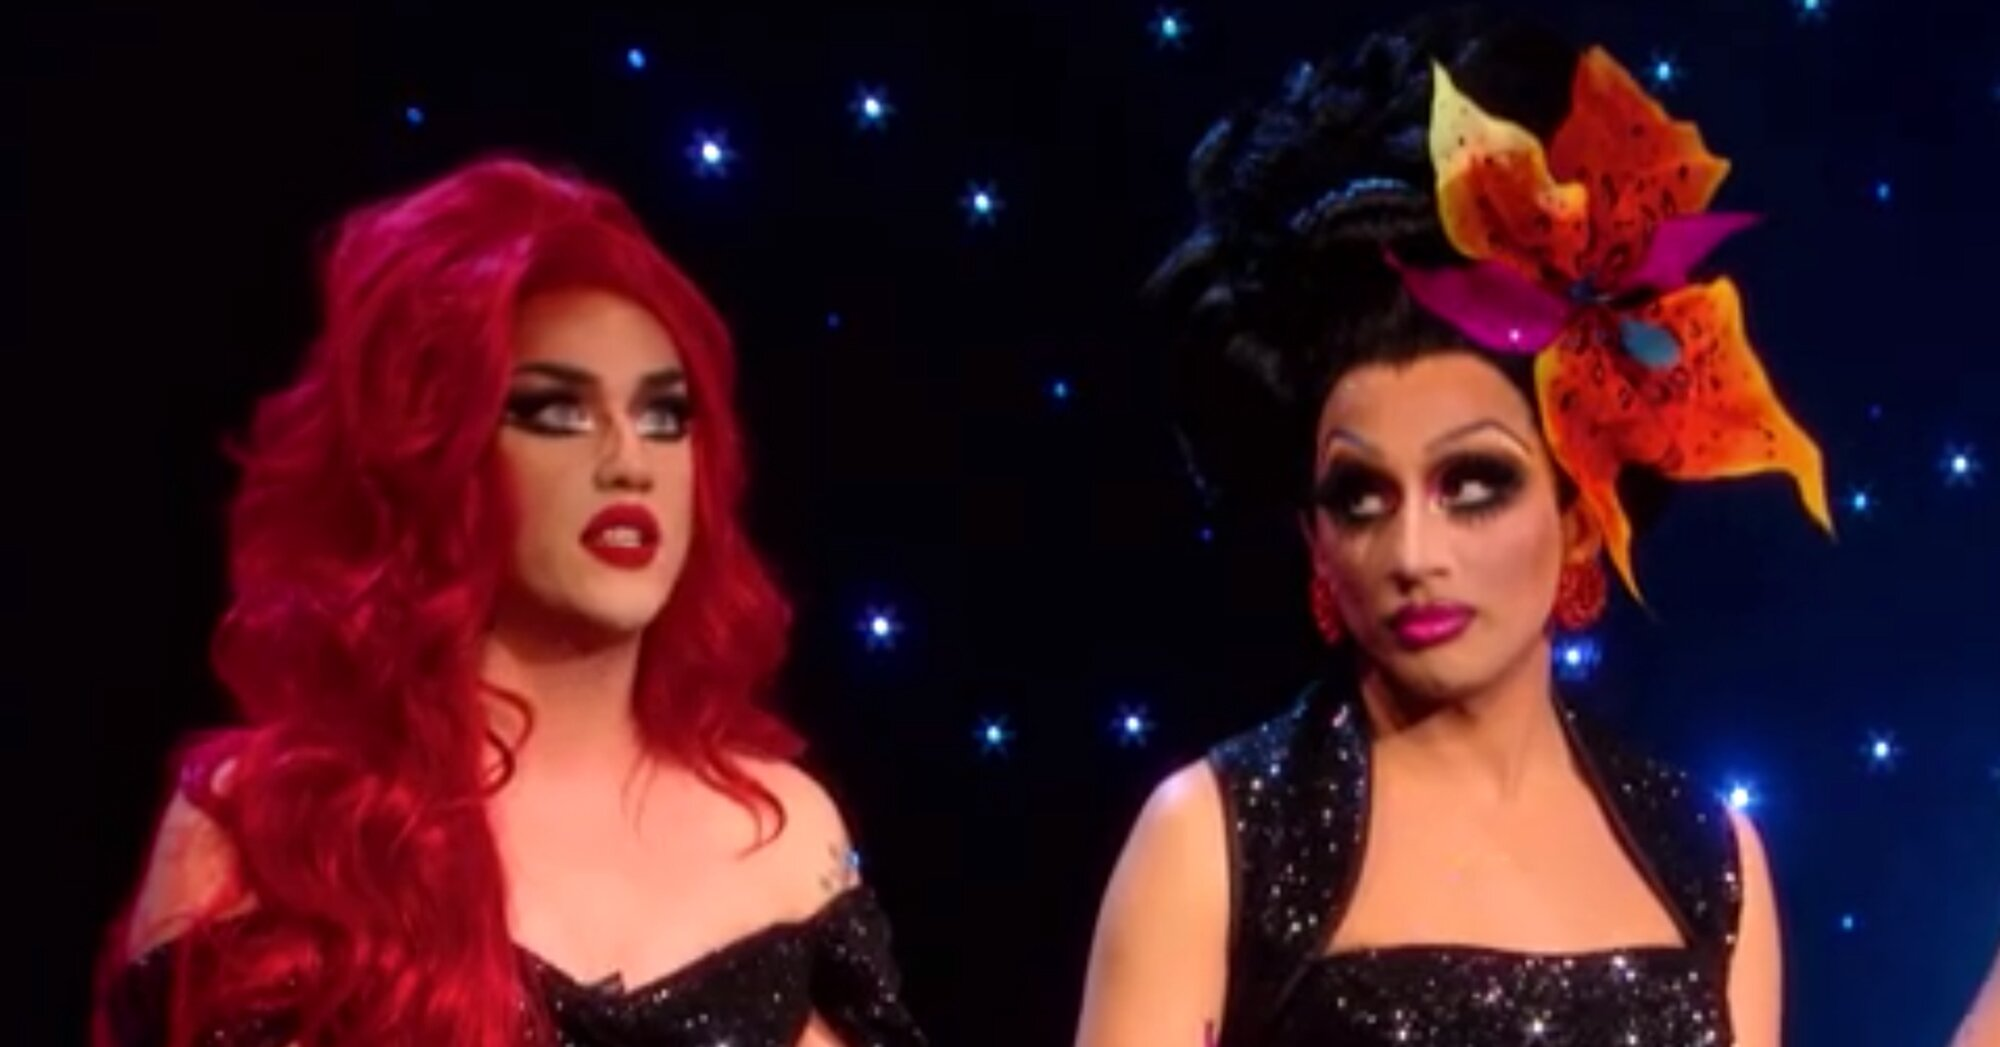 Adore reveals she asked 'Drag Race' crew to keep Bianca away from her